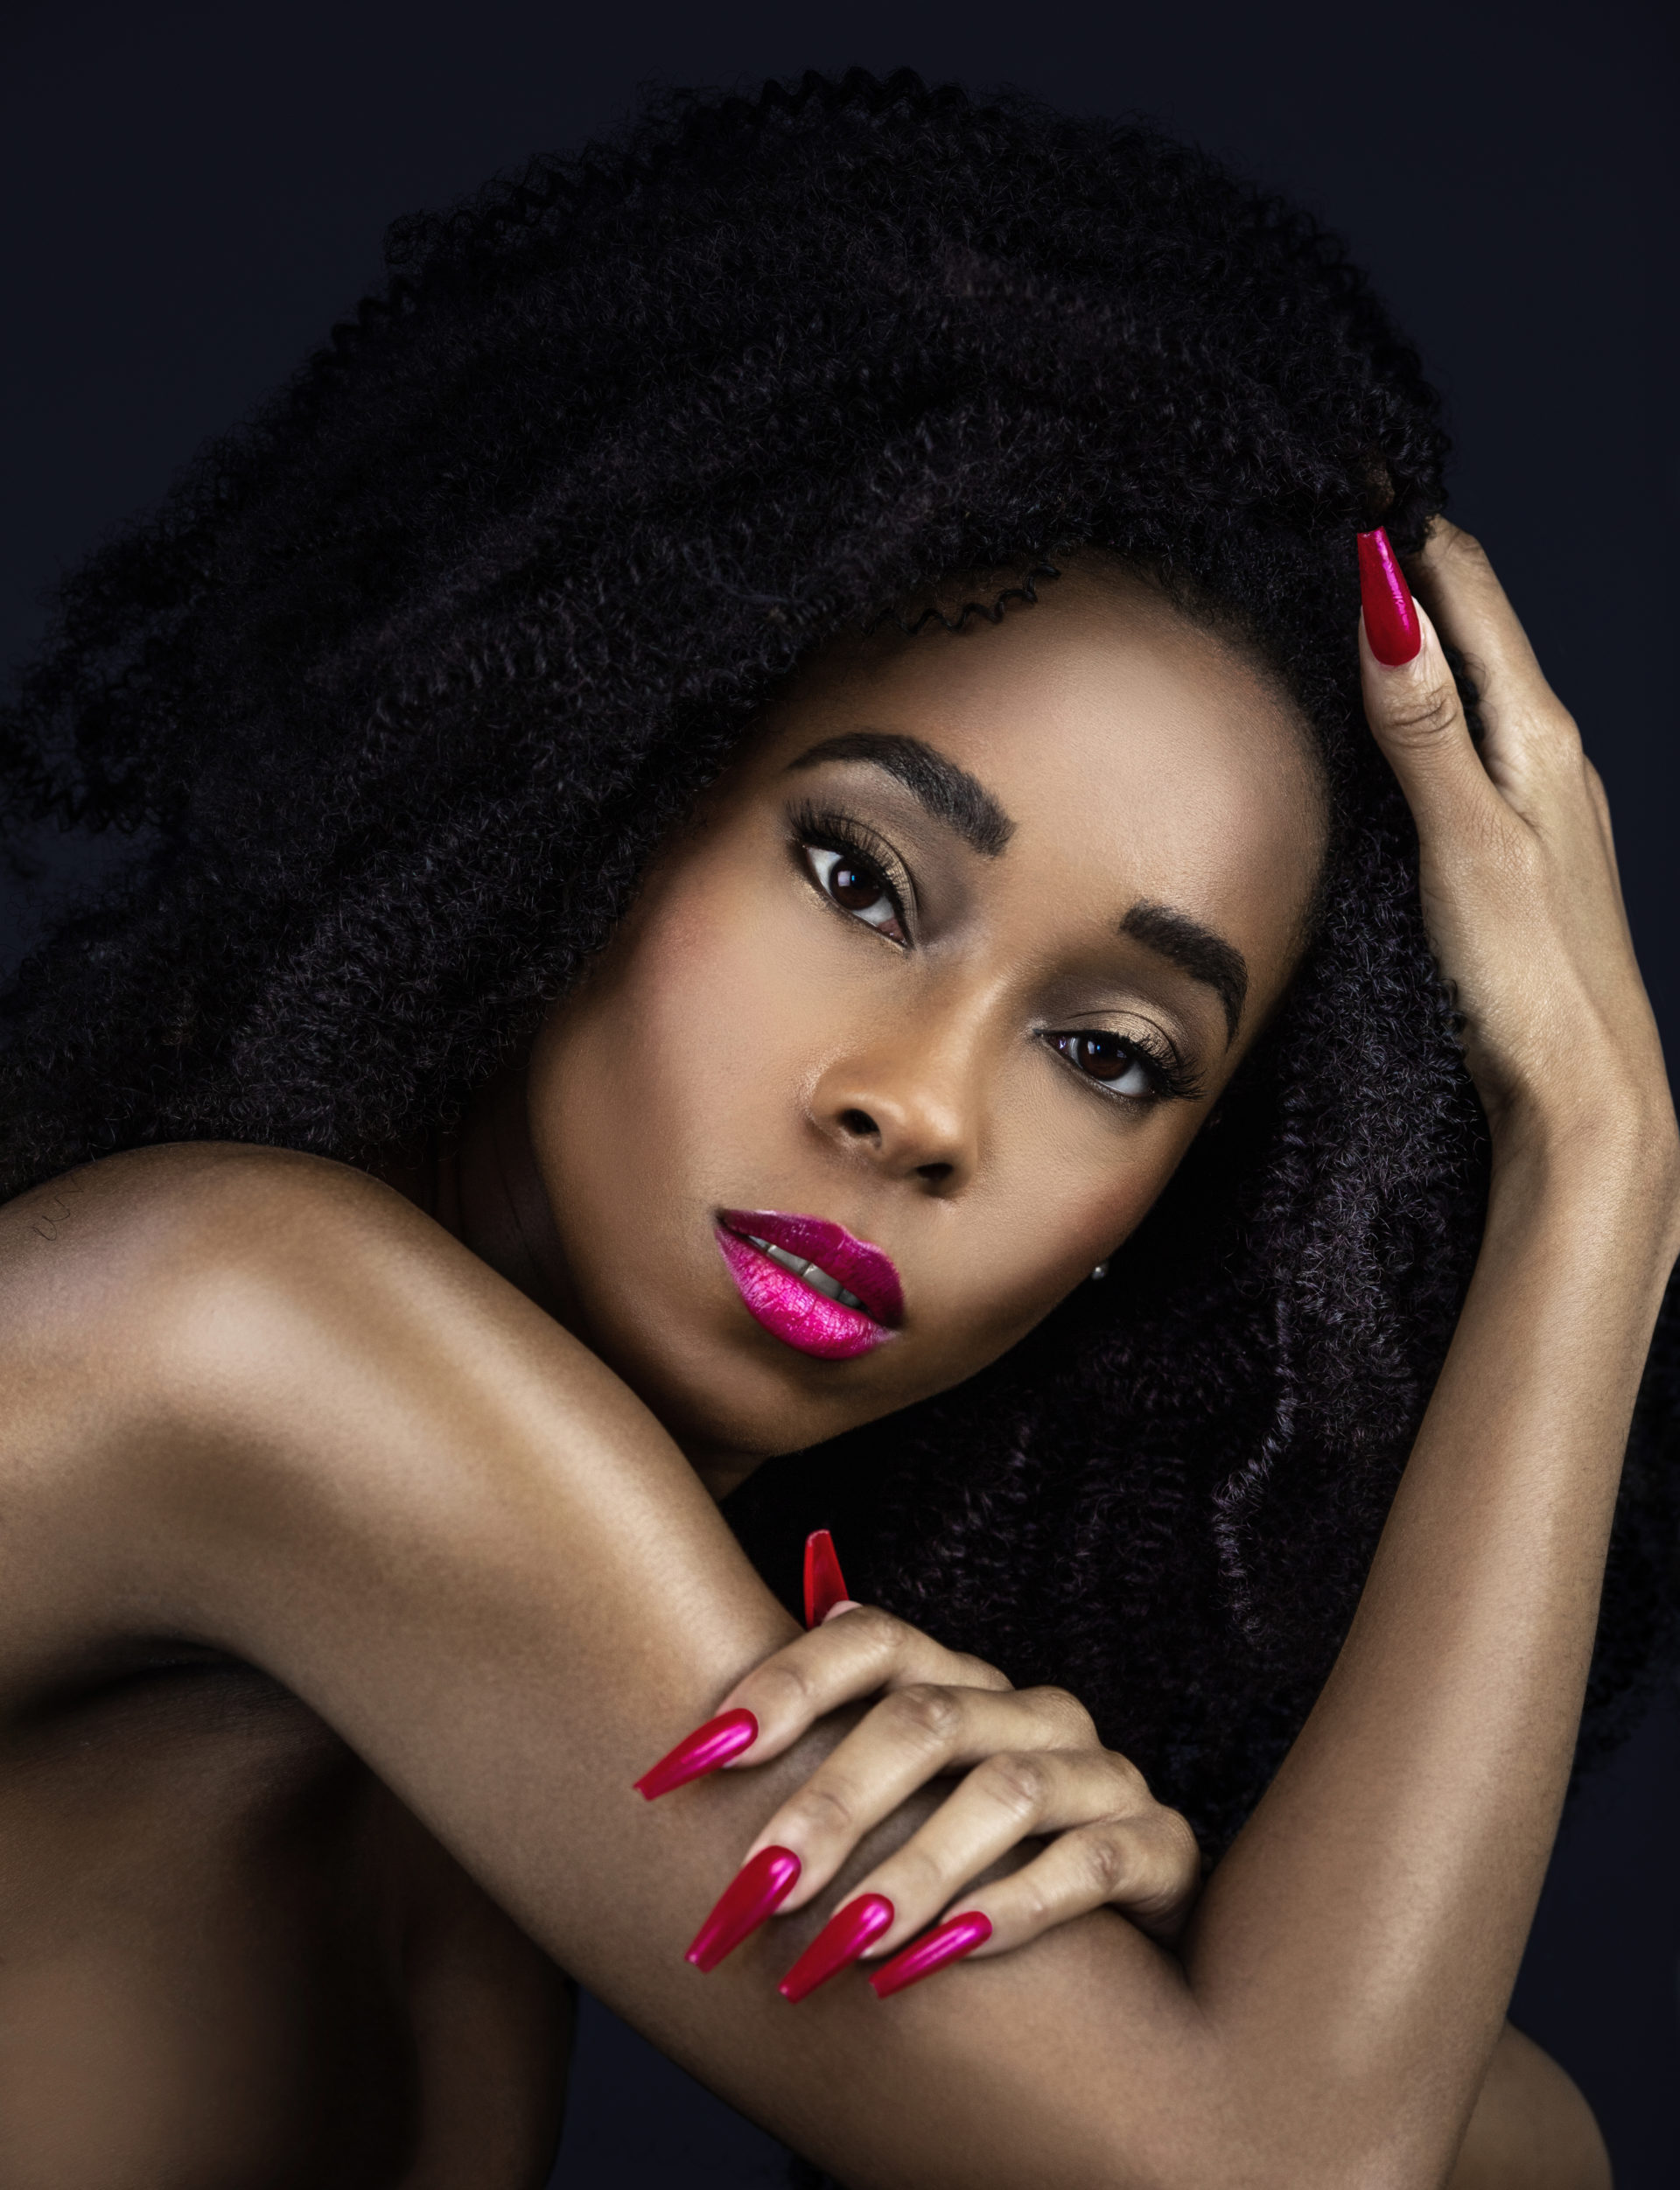 Curly Sexy Black Lady with Fuchsia Lipstick & Nails